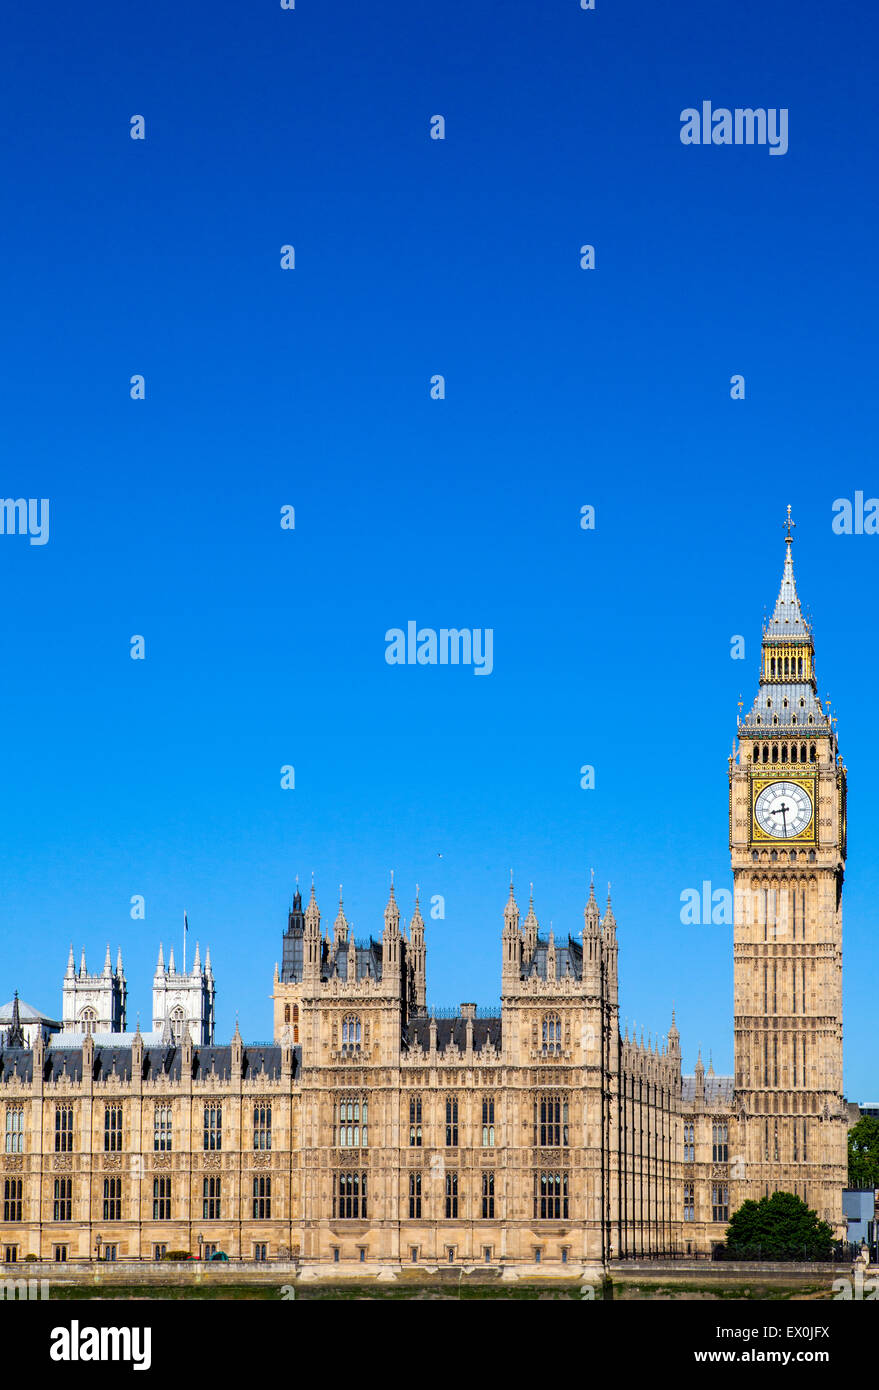 A view of the magnificent architecture of the Palace of Westminster in London. The towers of Westminster Abbey can - Stock Image